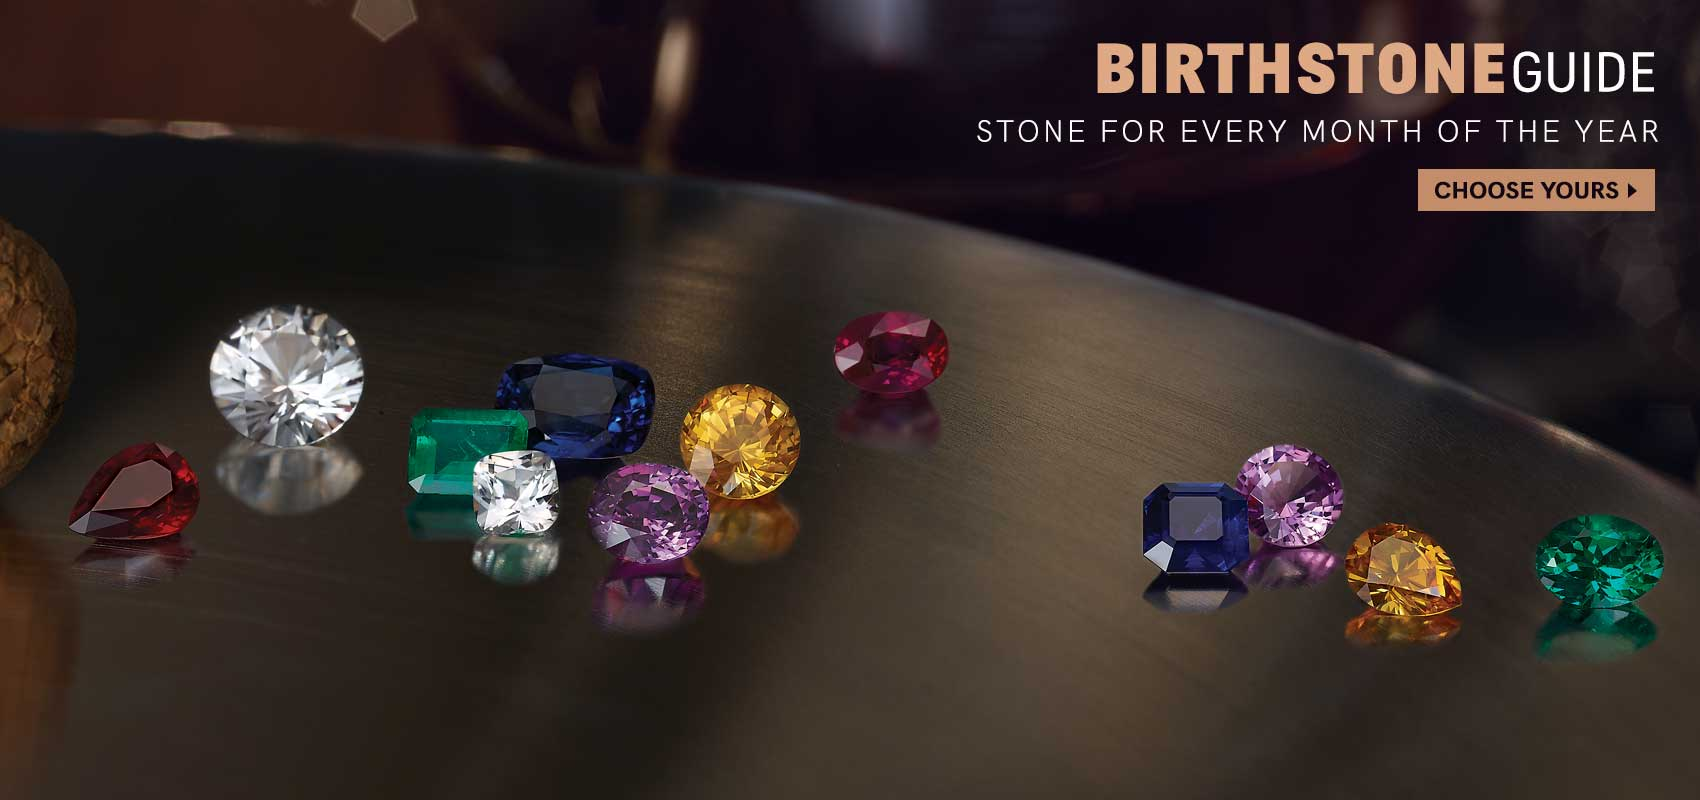 Birthstone Guide At Andress Jewelry In Saraland, AL